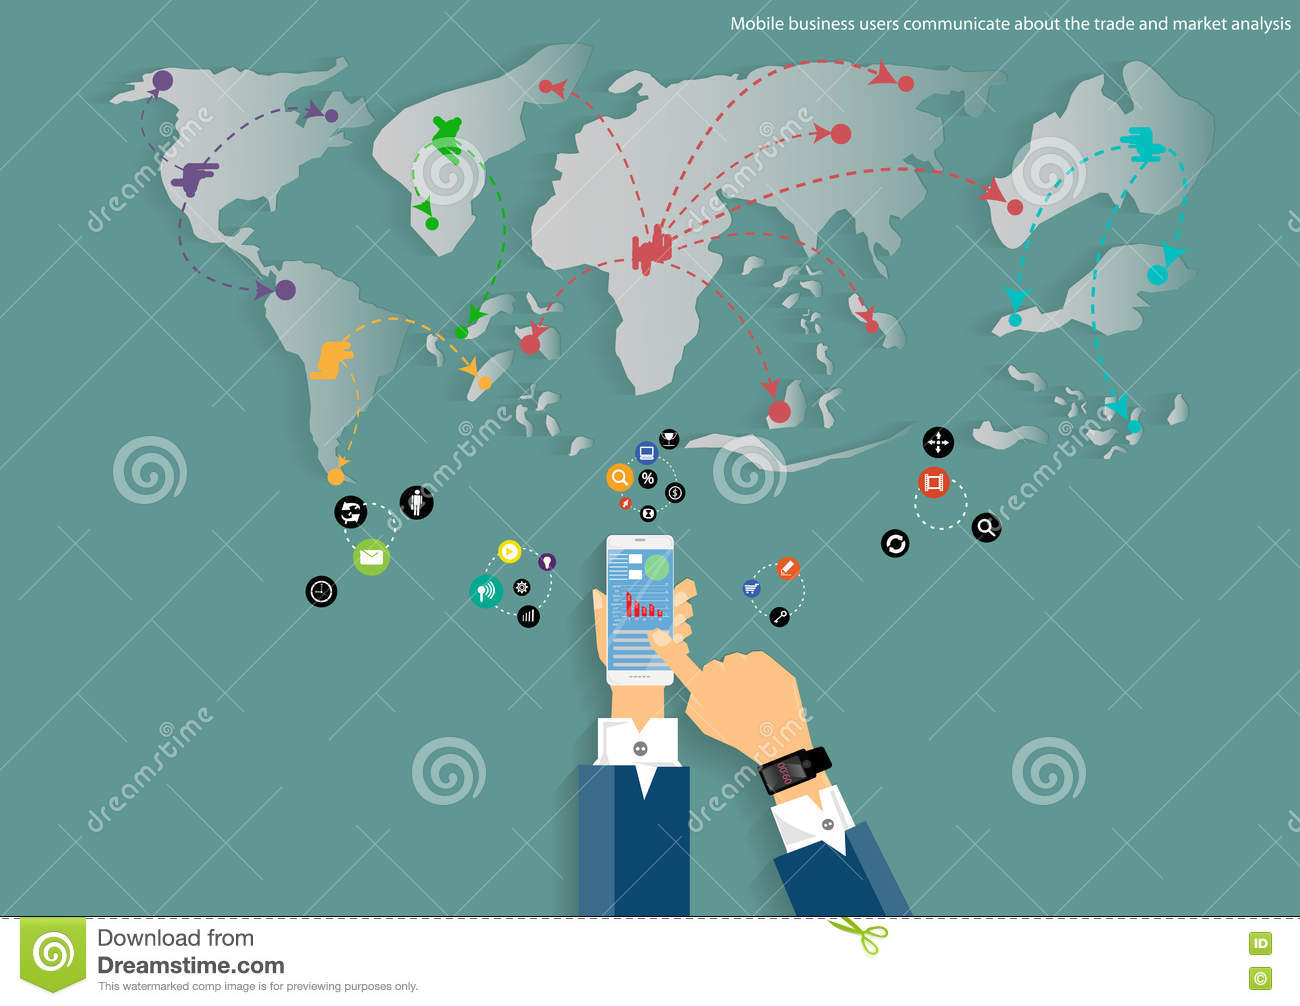 Vector mobile and travel the world map of business communication download comp gumiabroncs